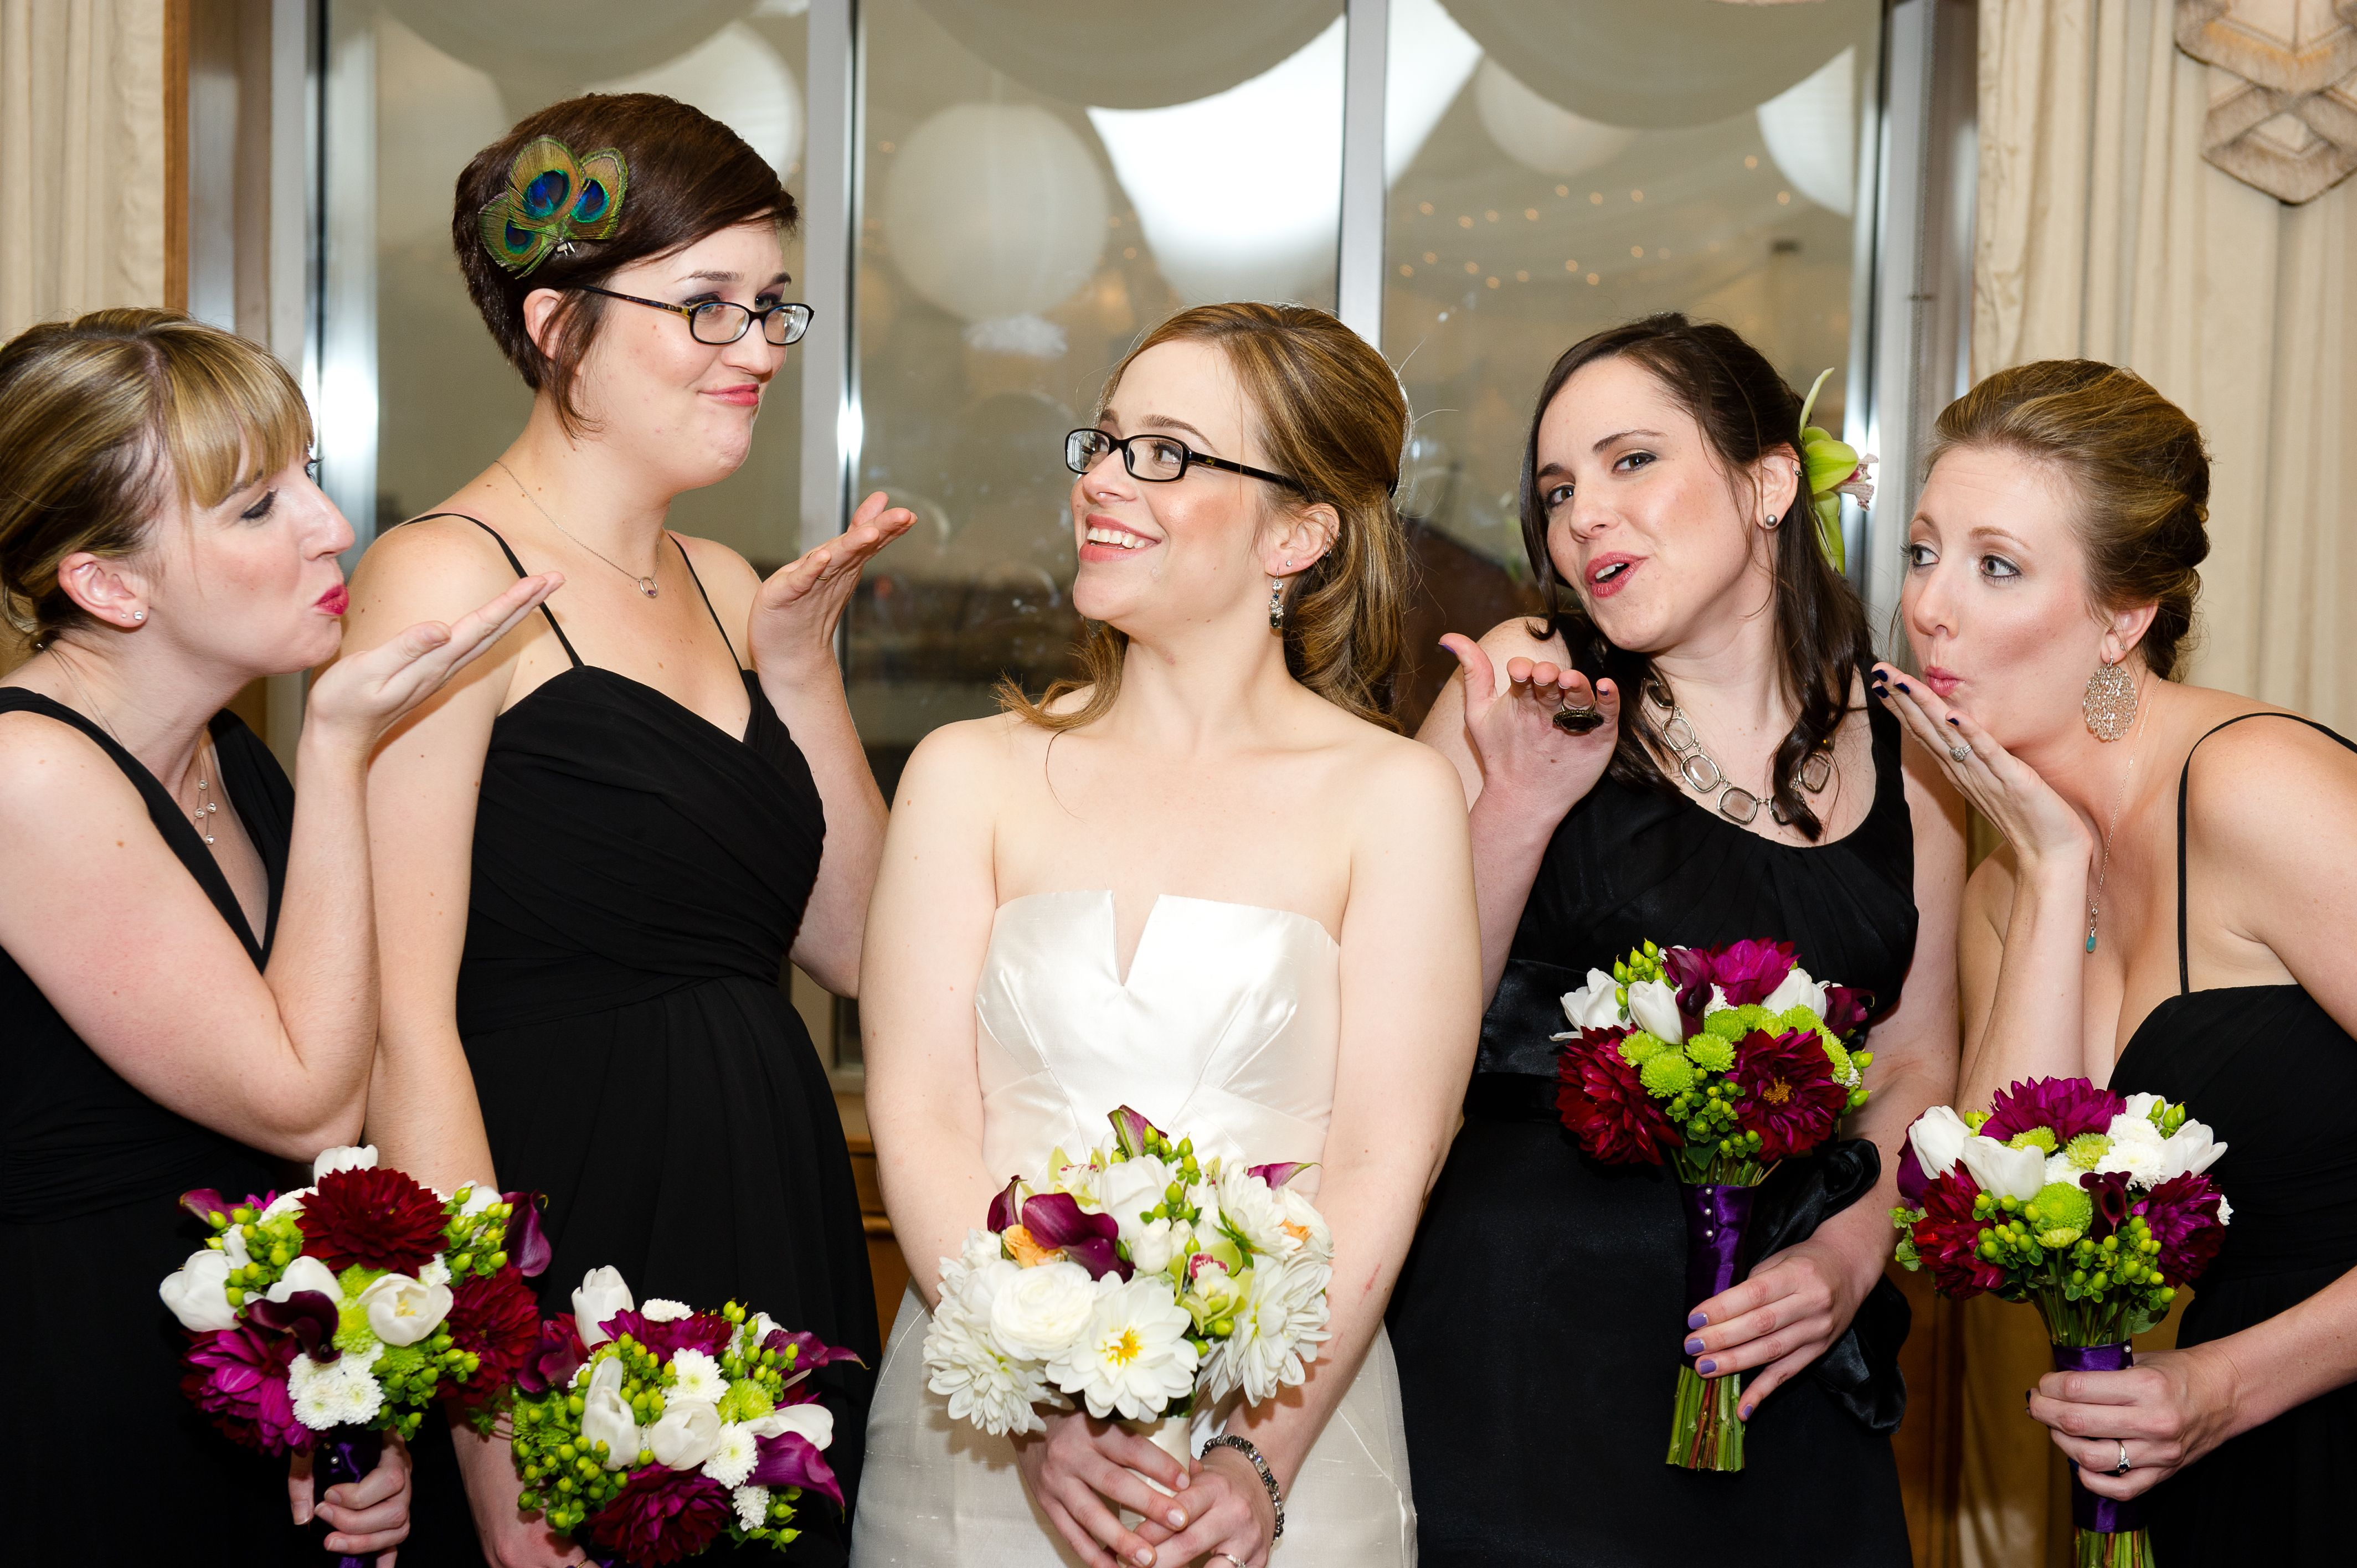 My girls wore black chiffon dresses from the Watters collection provided by Betsy Robinson's Bridal in Pikesville. They wore their own jewelry. Amy wore a peacock fascinator in her hair that we purchased at Lovely Bridal. Michele and Beth each wore an oversized lime cymbidium orchid in their hair. Each girl wore her choice of colorful open-toed pumps. Florals by Divine Designs and Events.